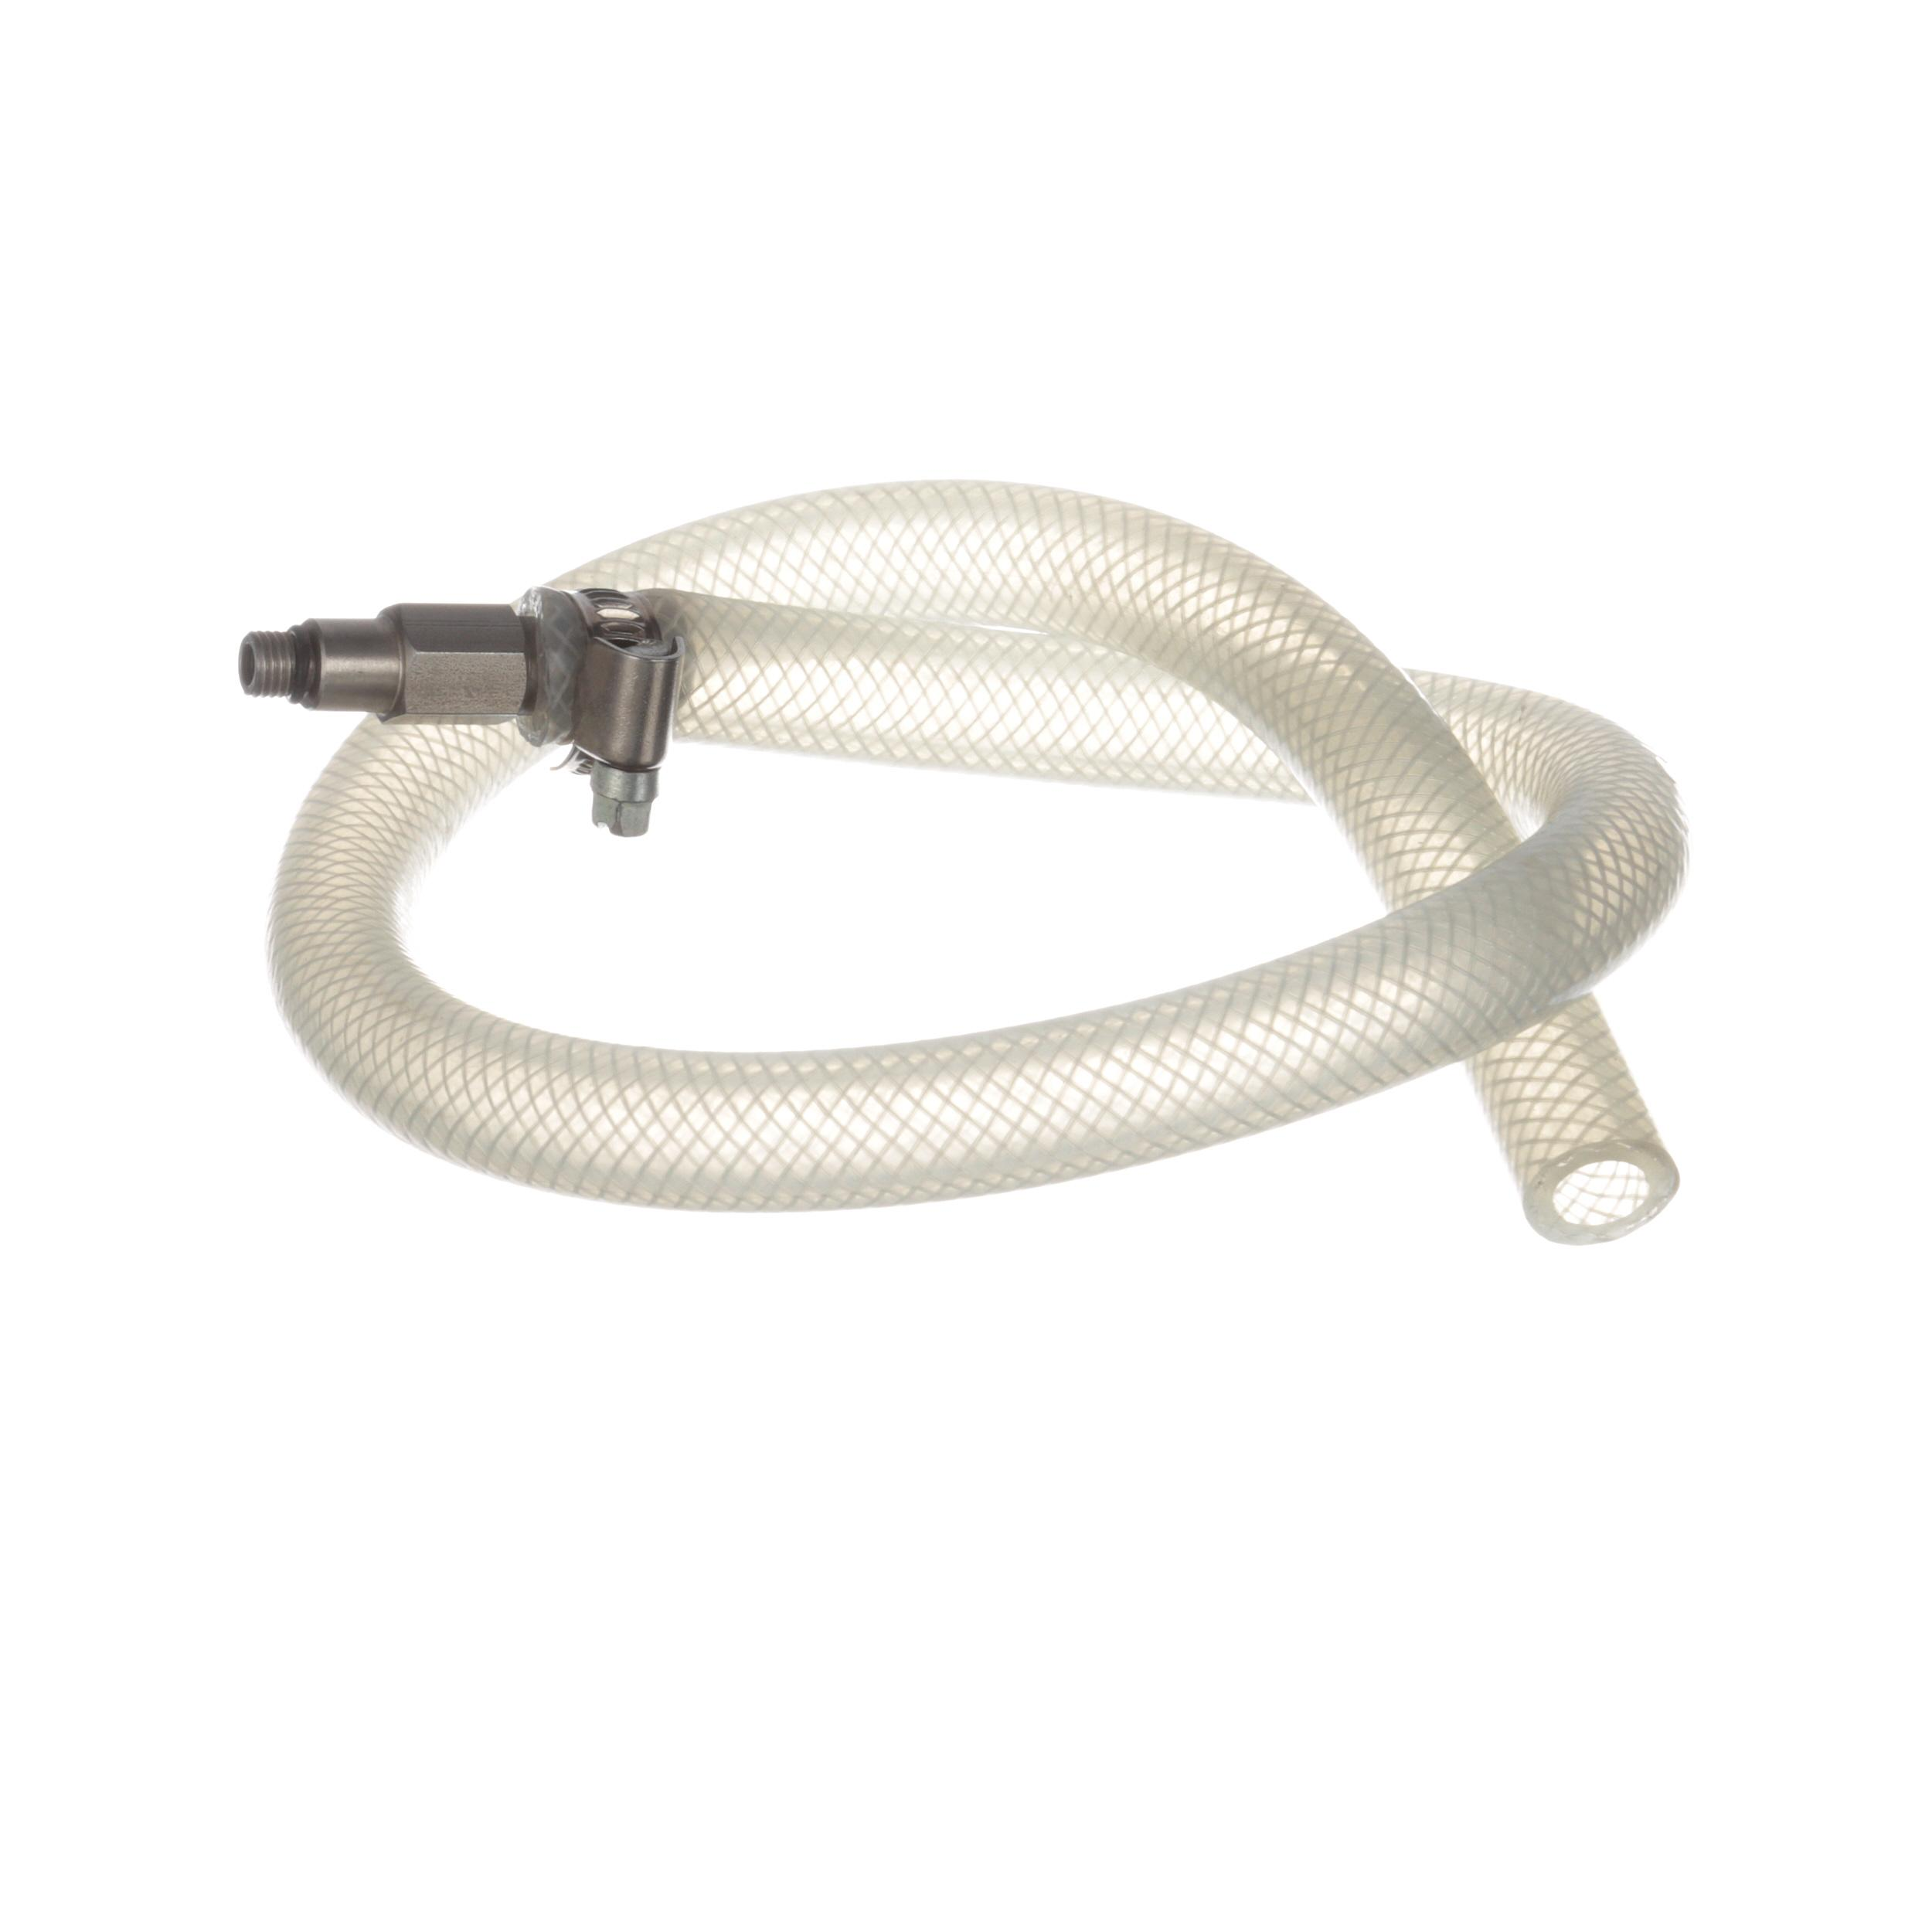 BLODGETT THREADED BRANCH WITH HOSE FOR